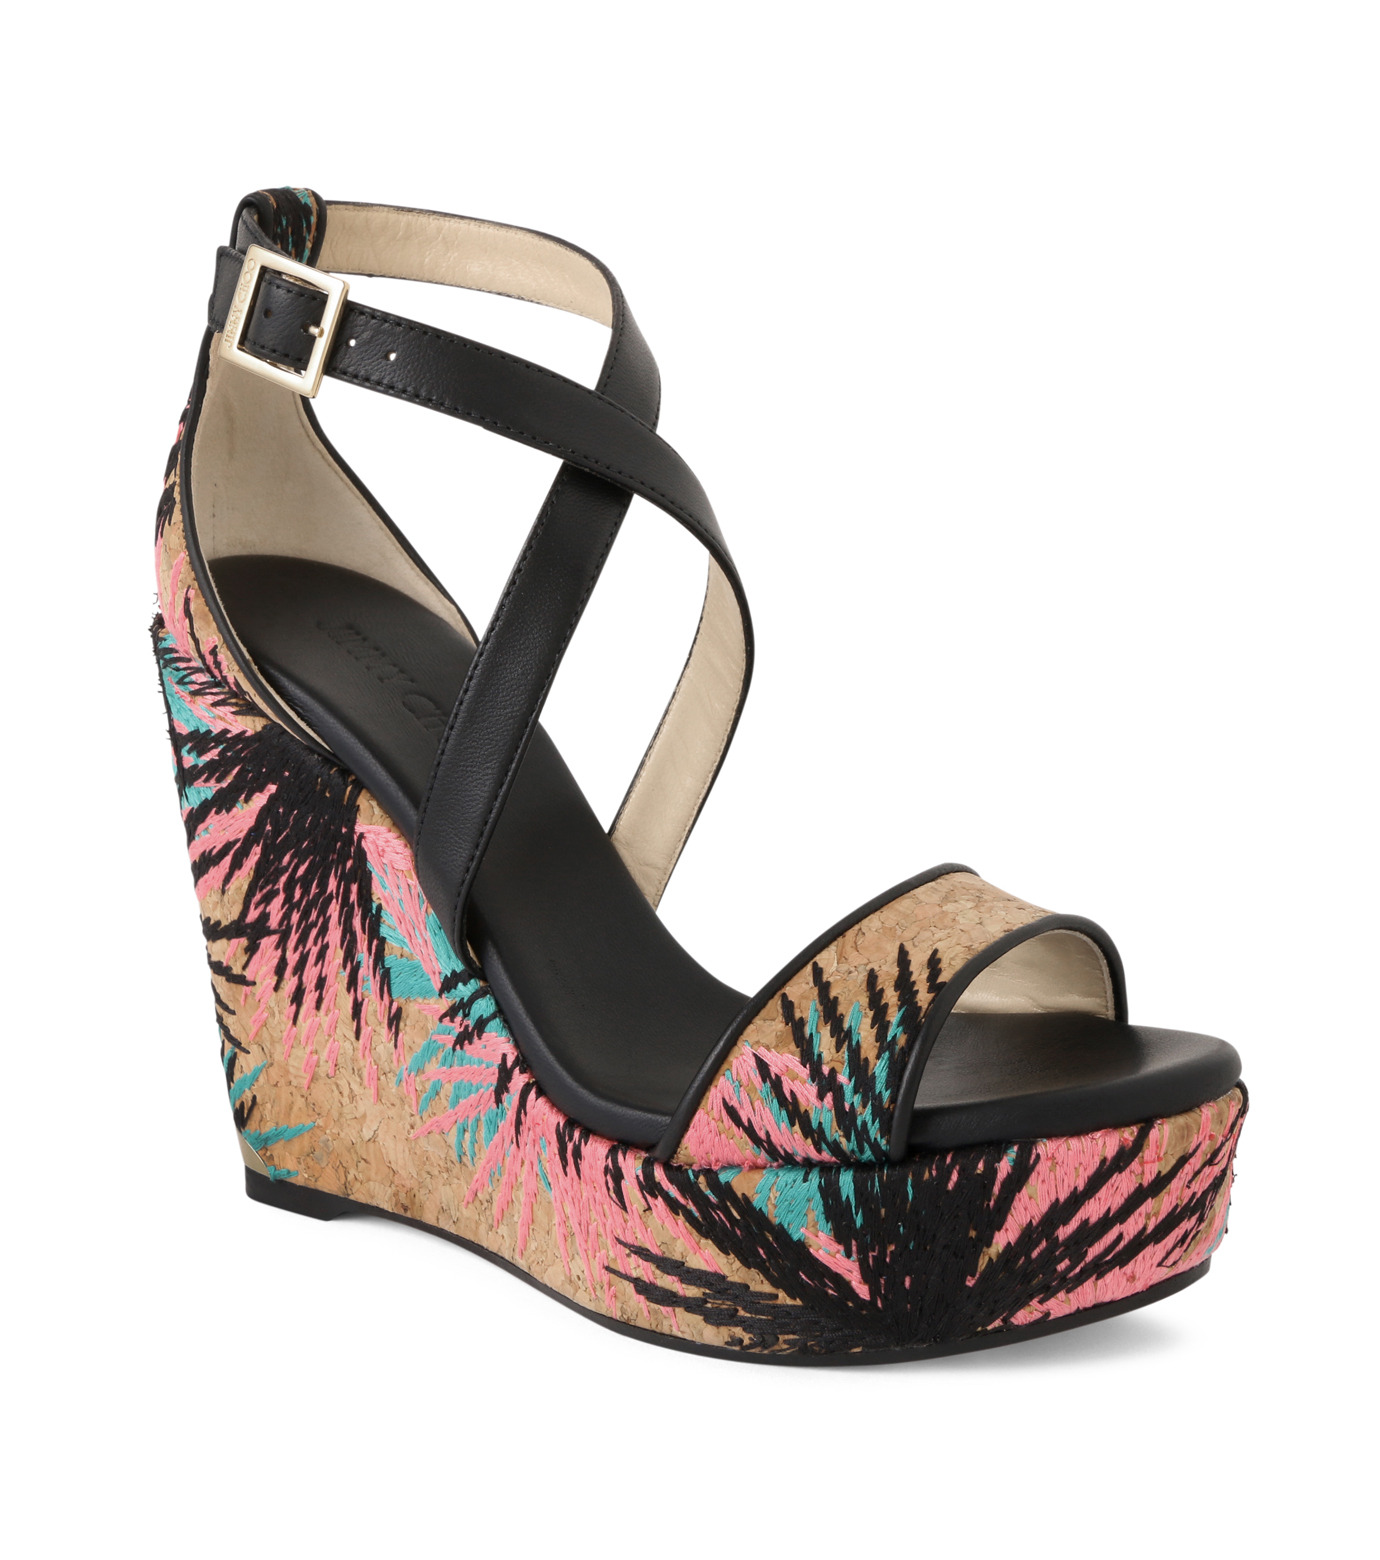 Jimmy Choo(ジミーチュウ)の161Cork Wedge Palm Tree-BLACK(シューズ/shoes)-PORTIA120PEK-13 拡大詳細画像1